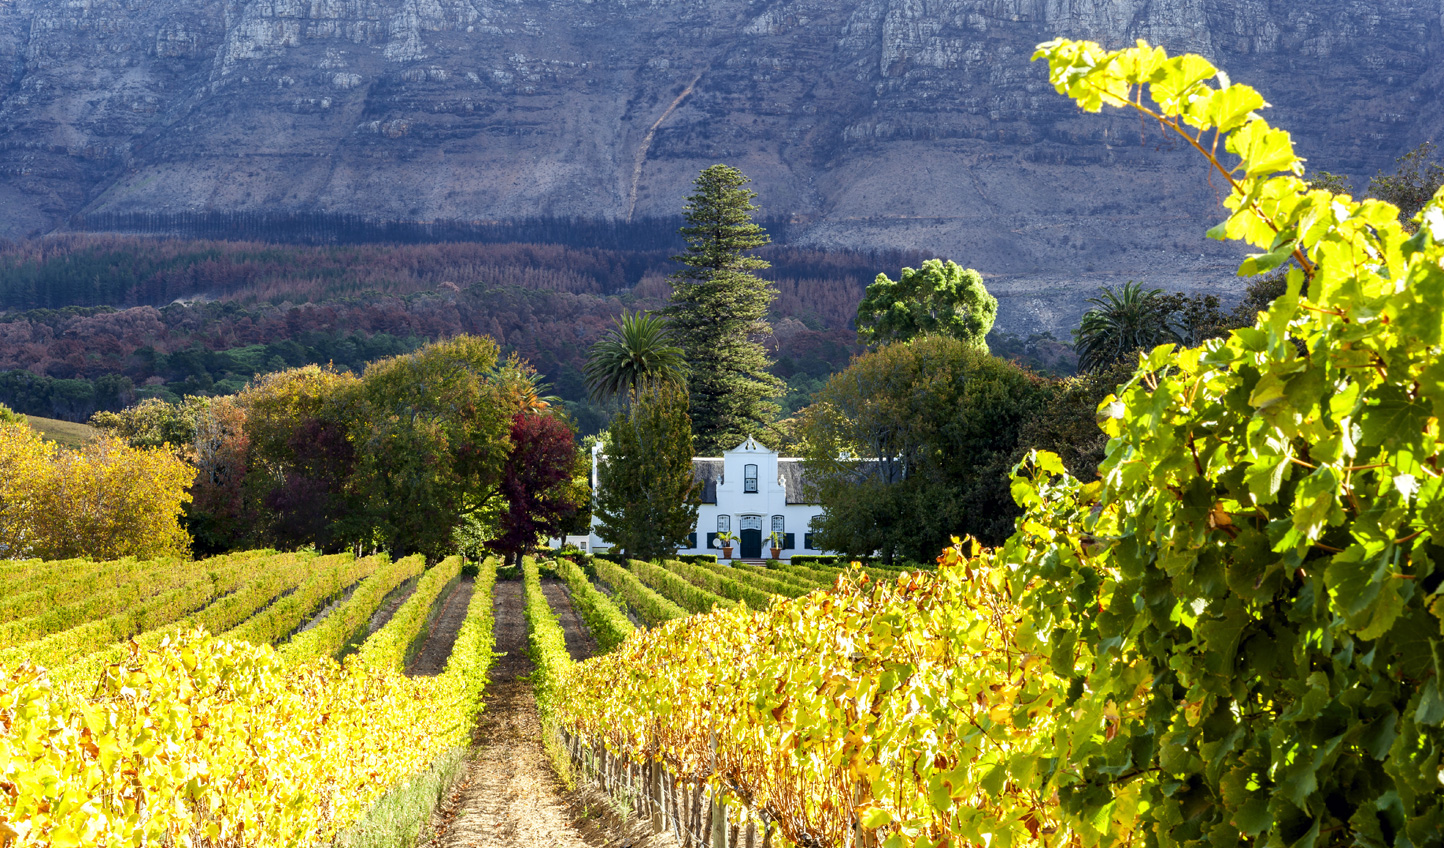 Stroll through the rich vineyards of Constantia